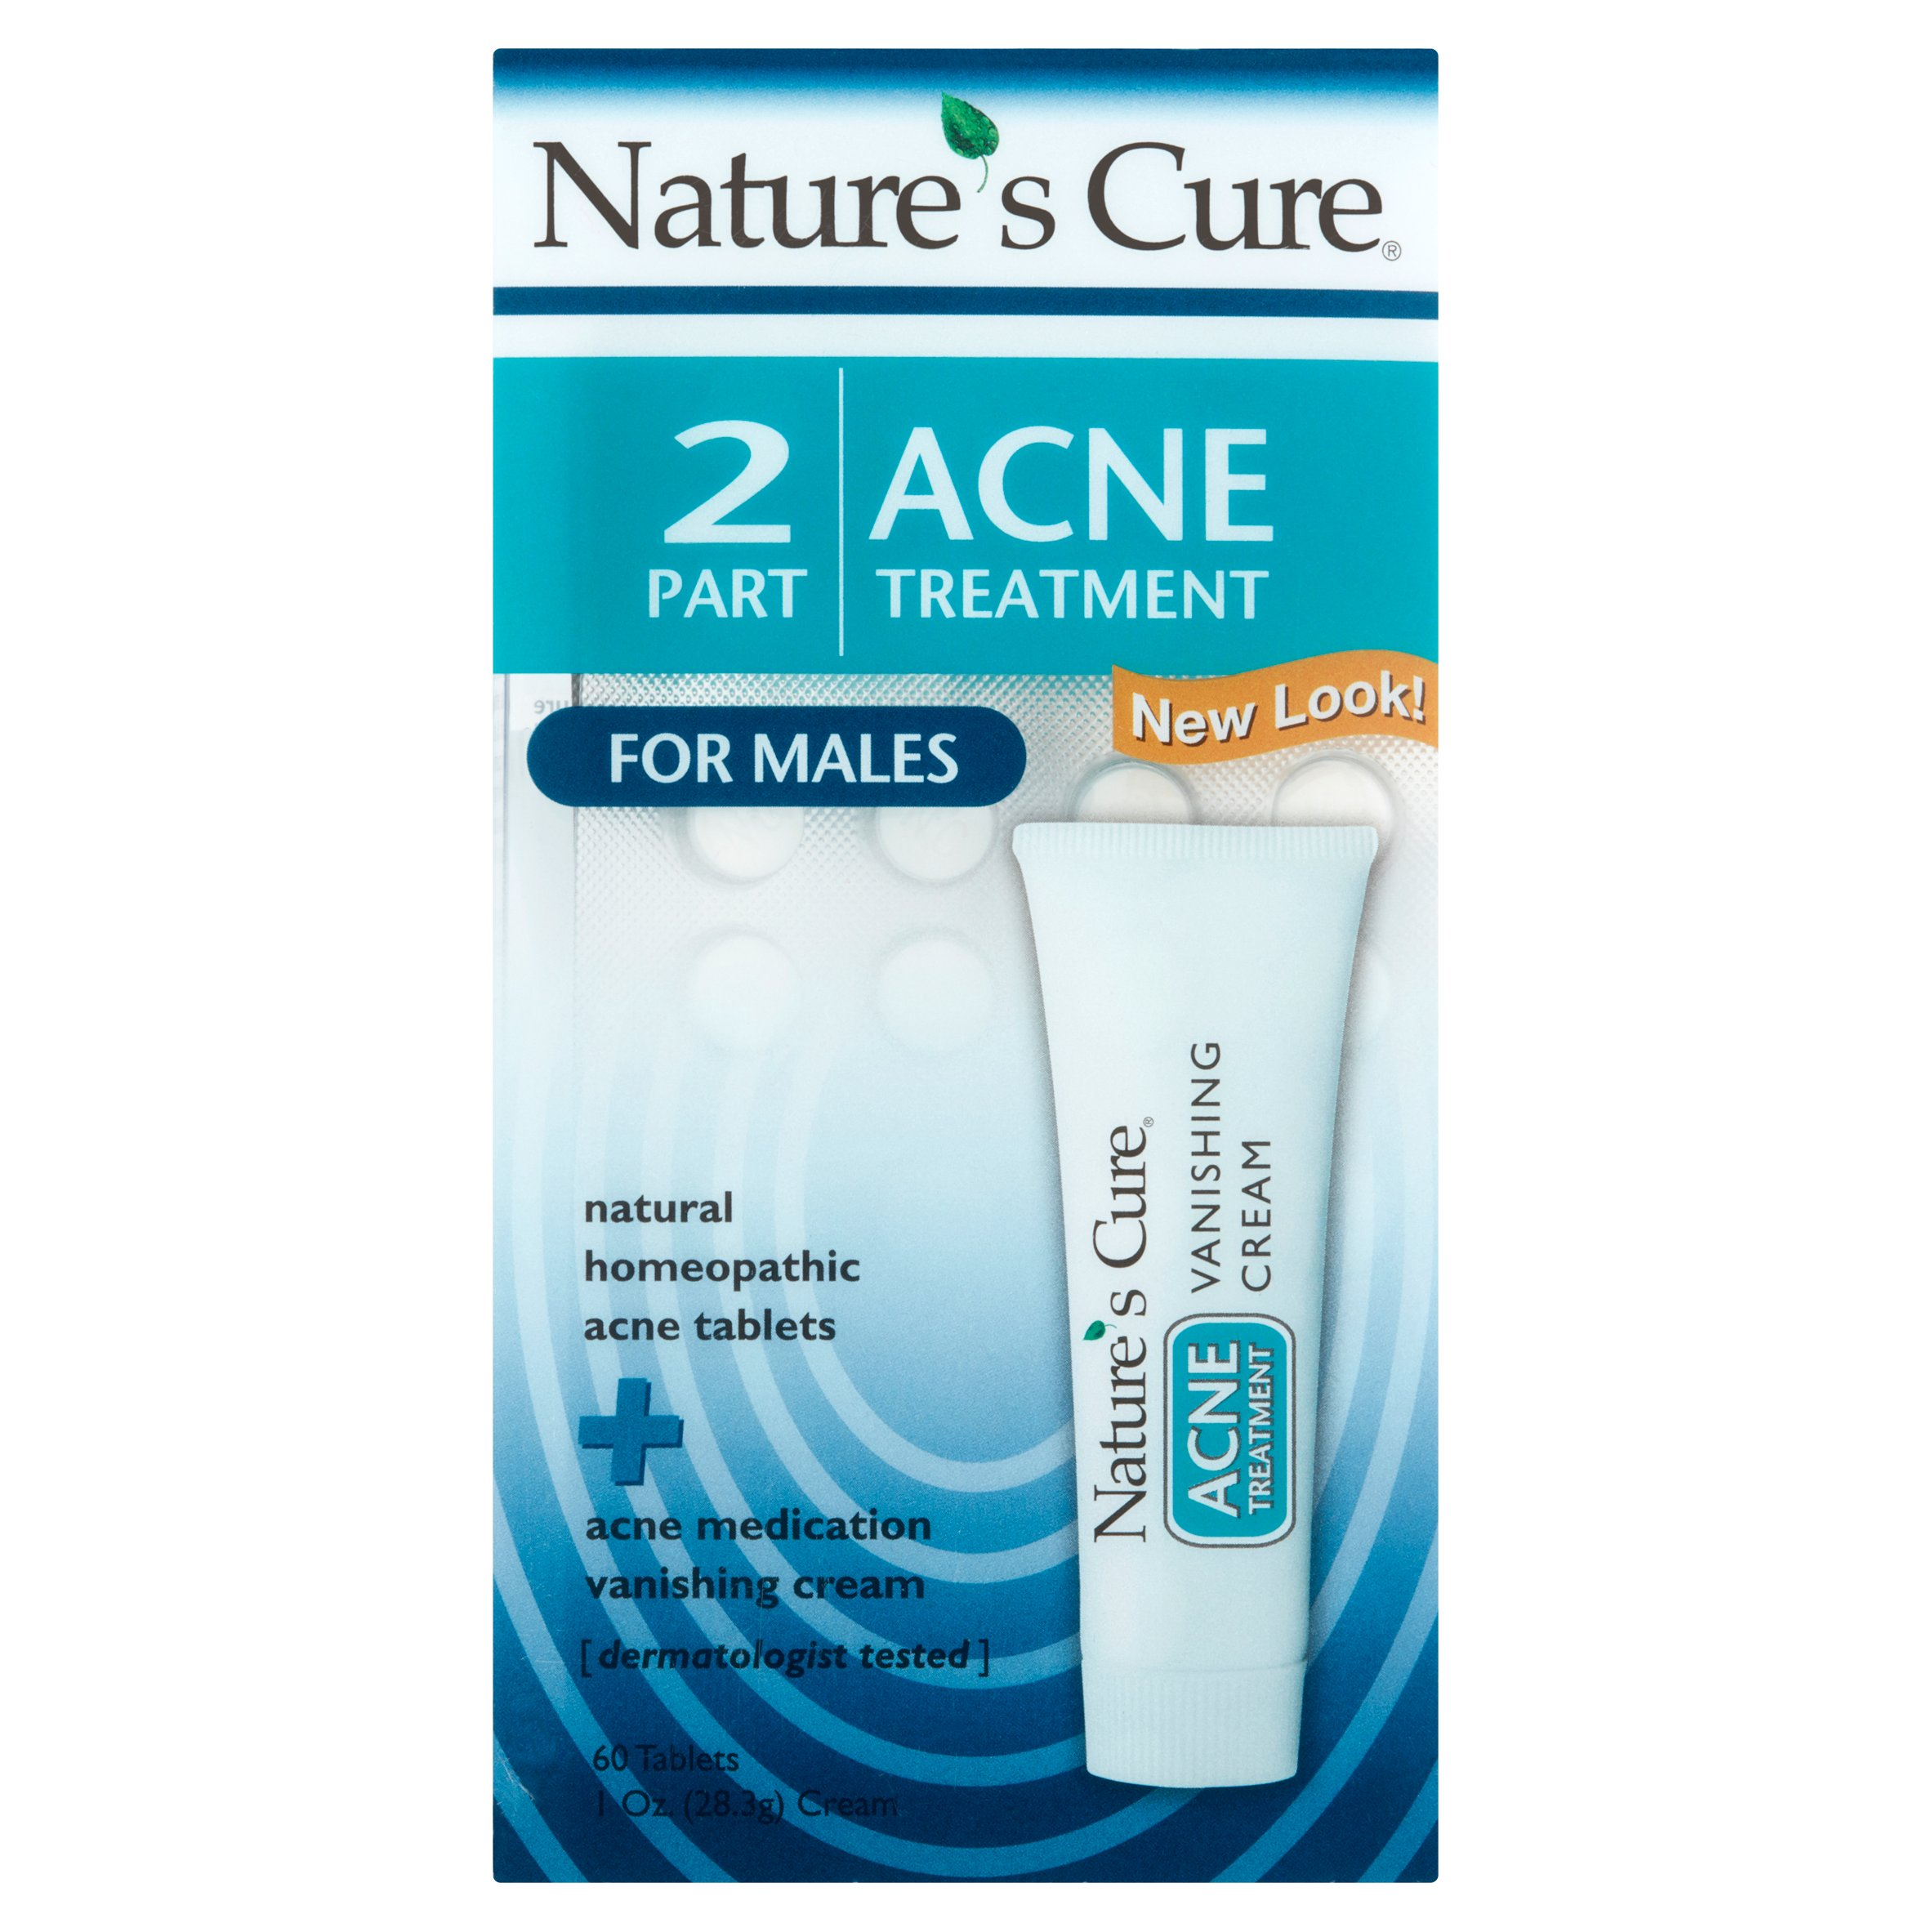 Nature's Cure 2 Part Acne Treatment for Males